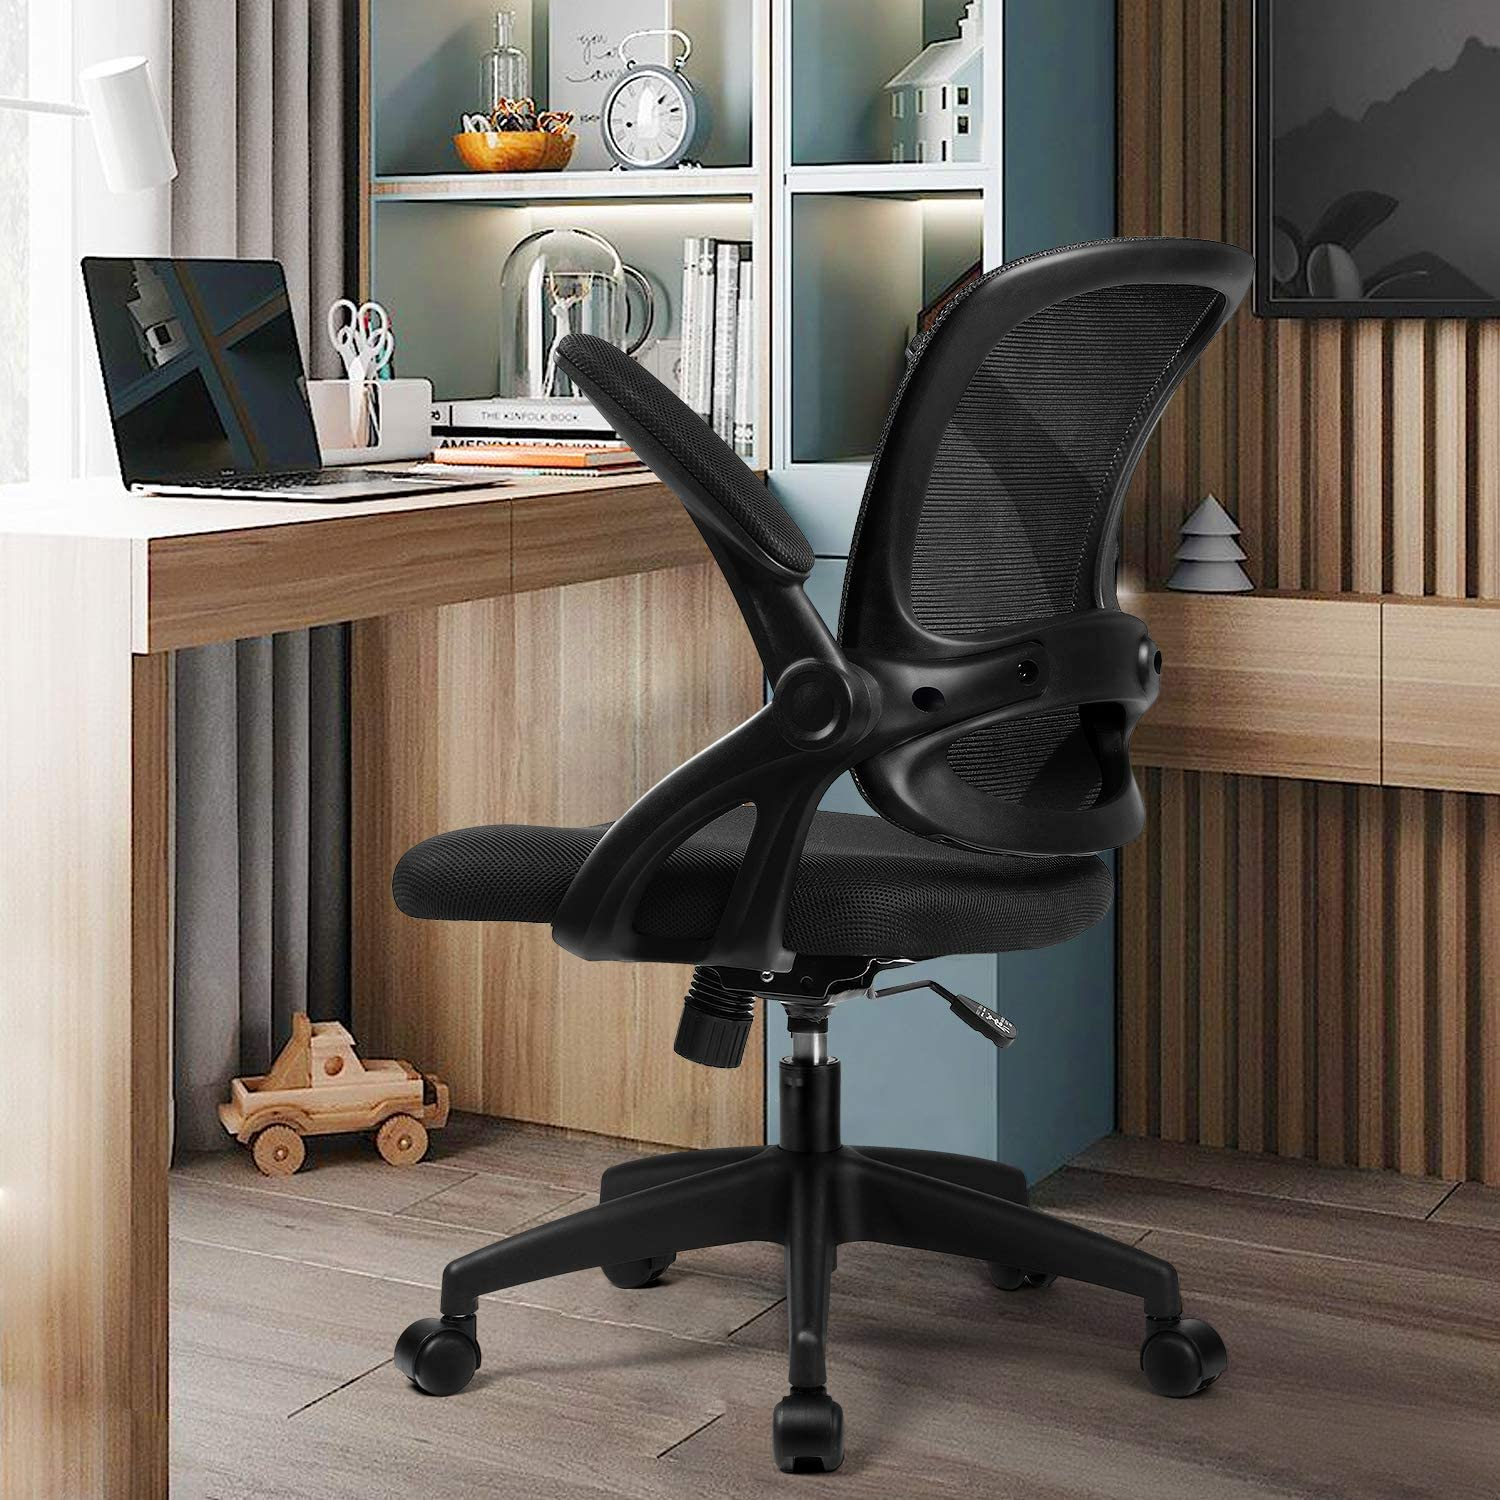 Comhoma Office Chair Ergonomic Desk Chair Mesh Computer Chair with Flip Up Armrest,Mid Back Task Home Office Chair,Swivel Chair with Smooth Casters,Black